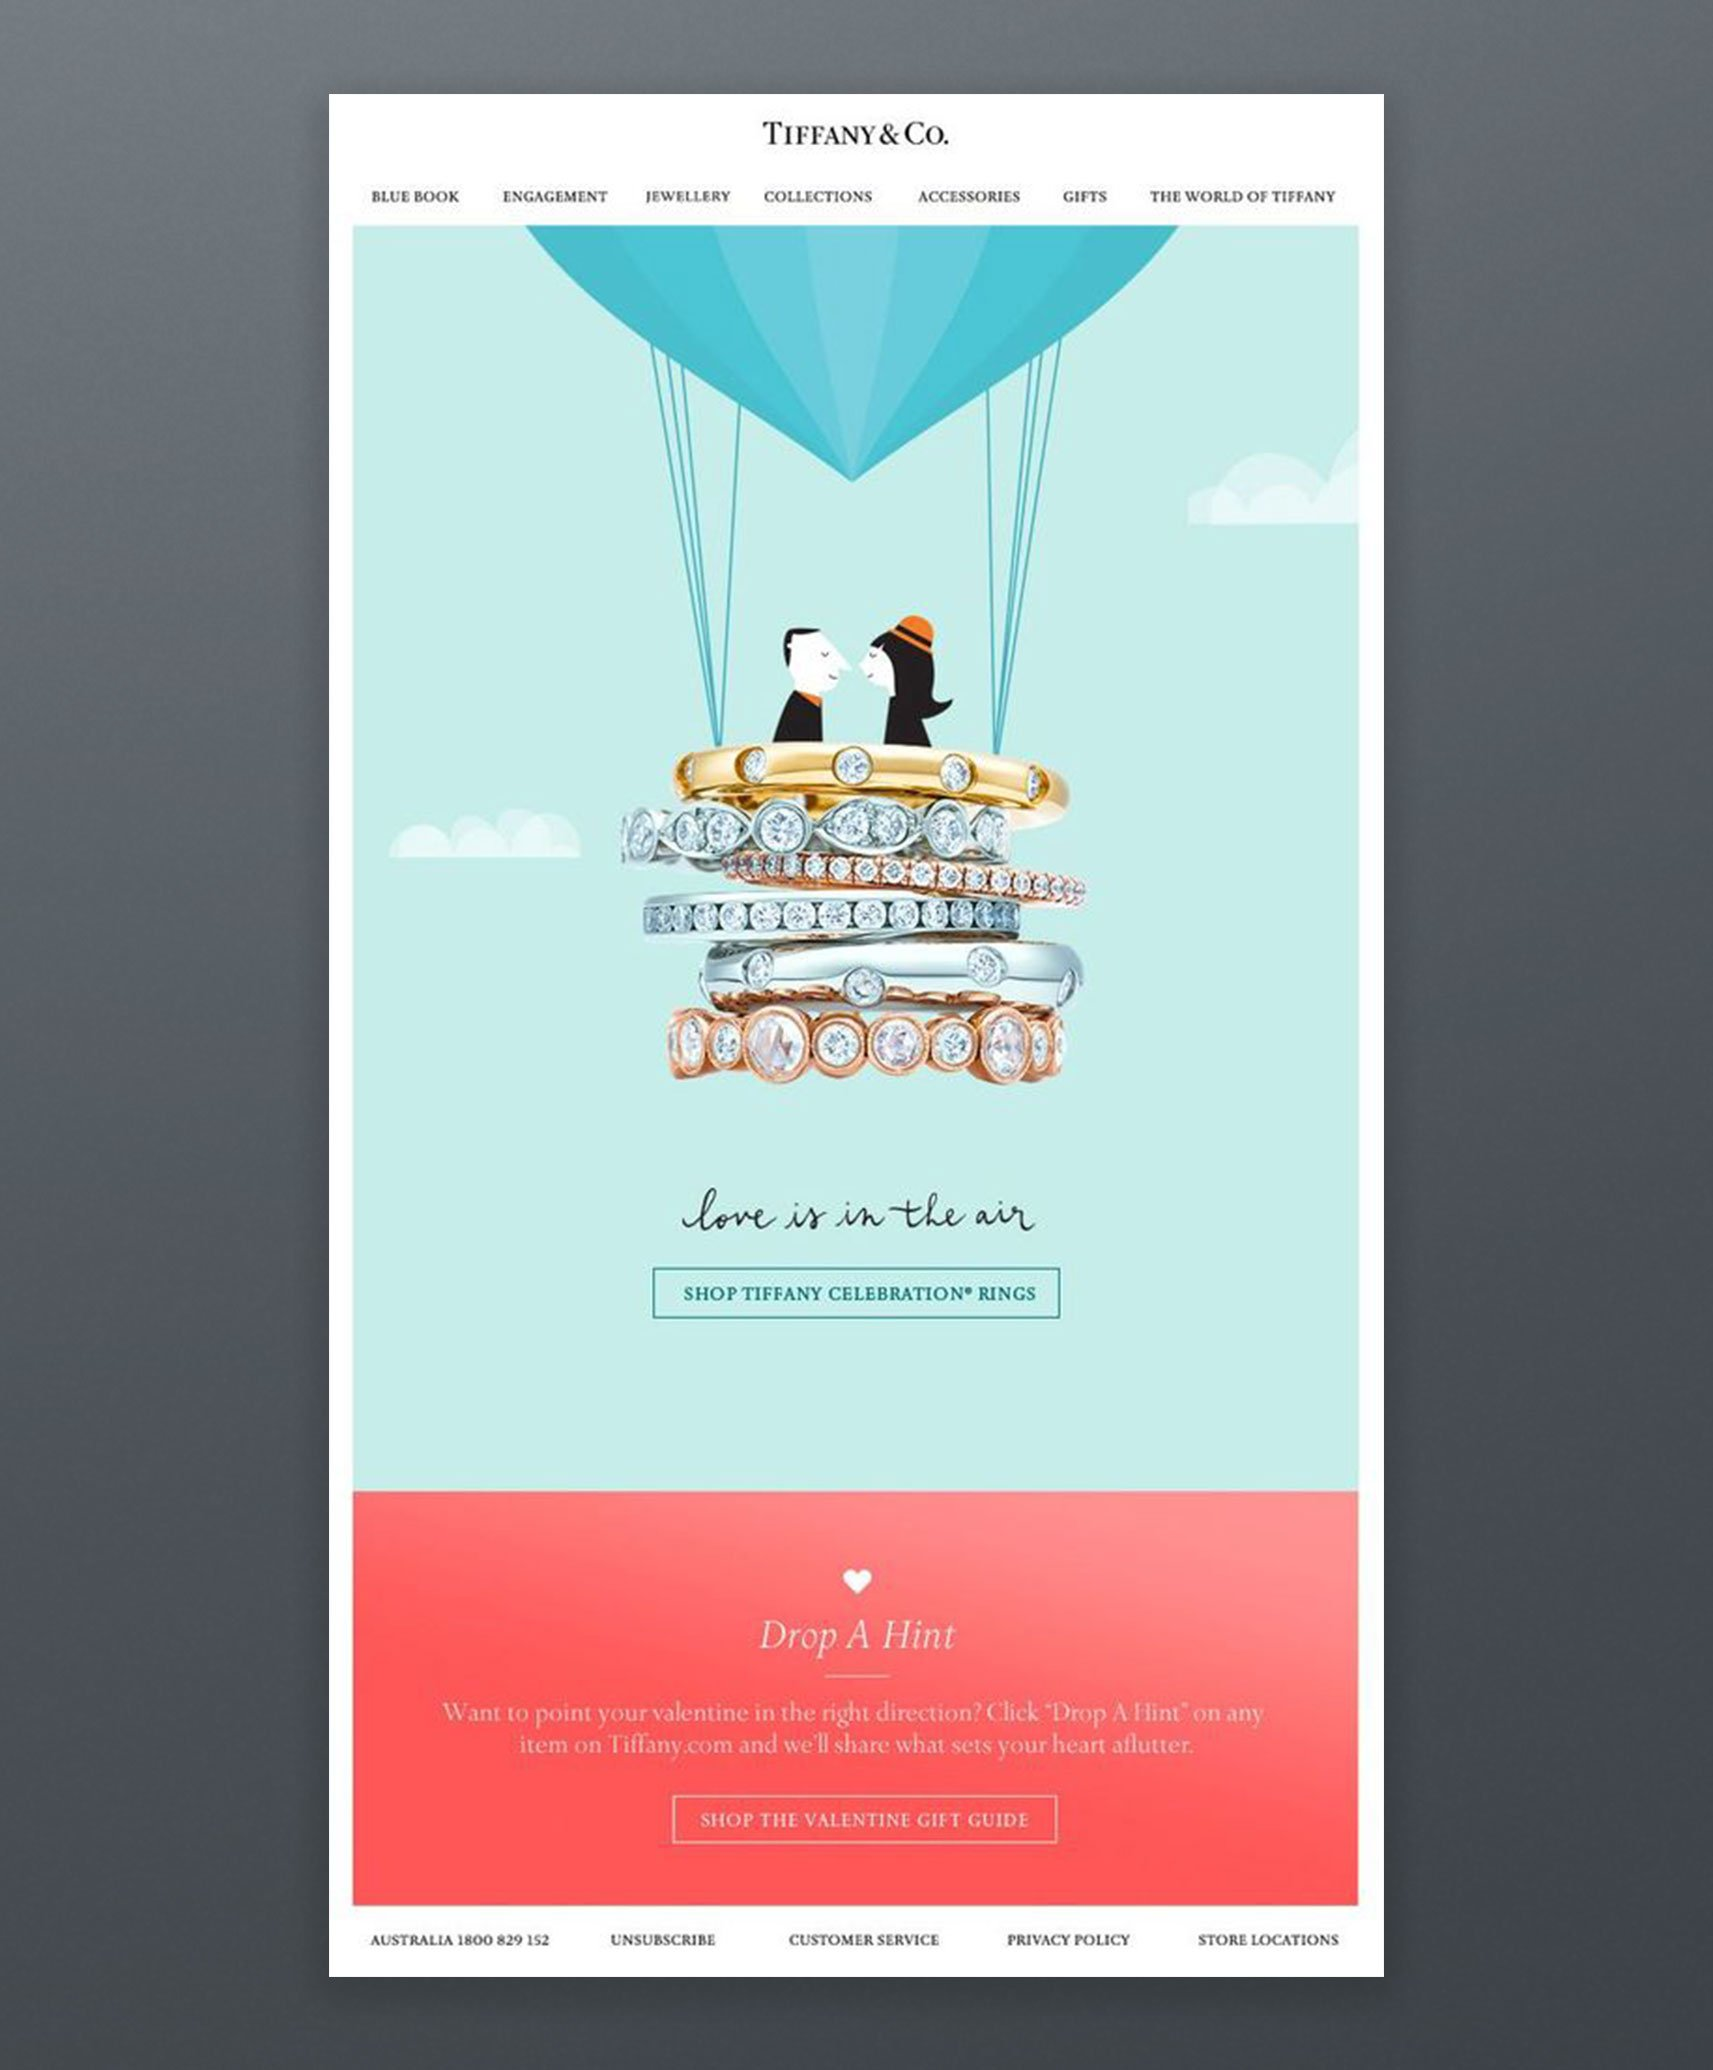 Tiffany Co Email Marketing Example